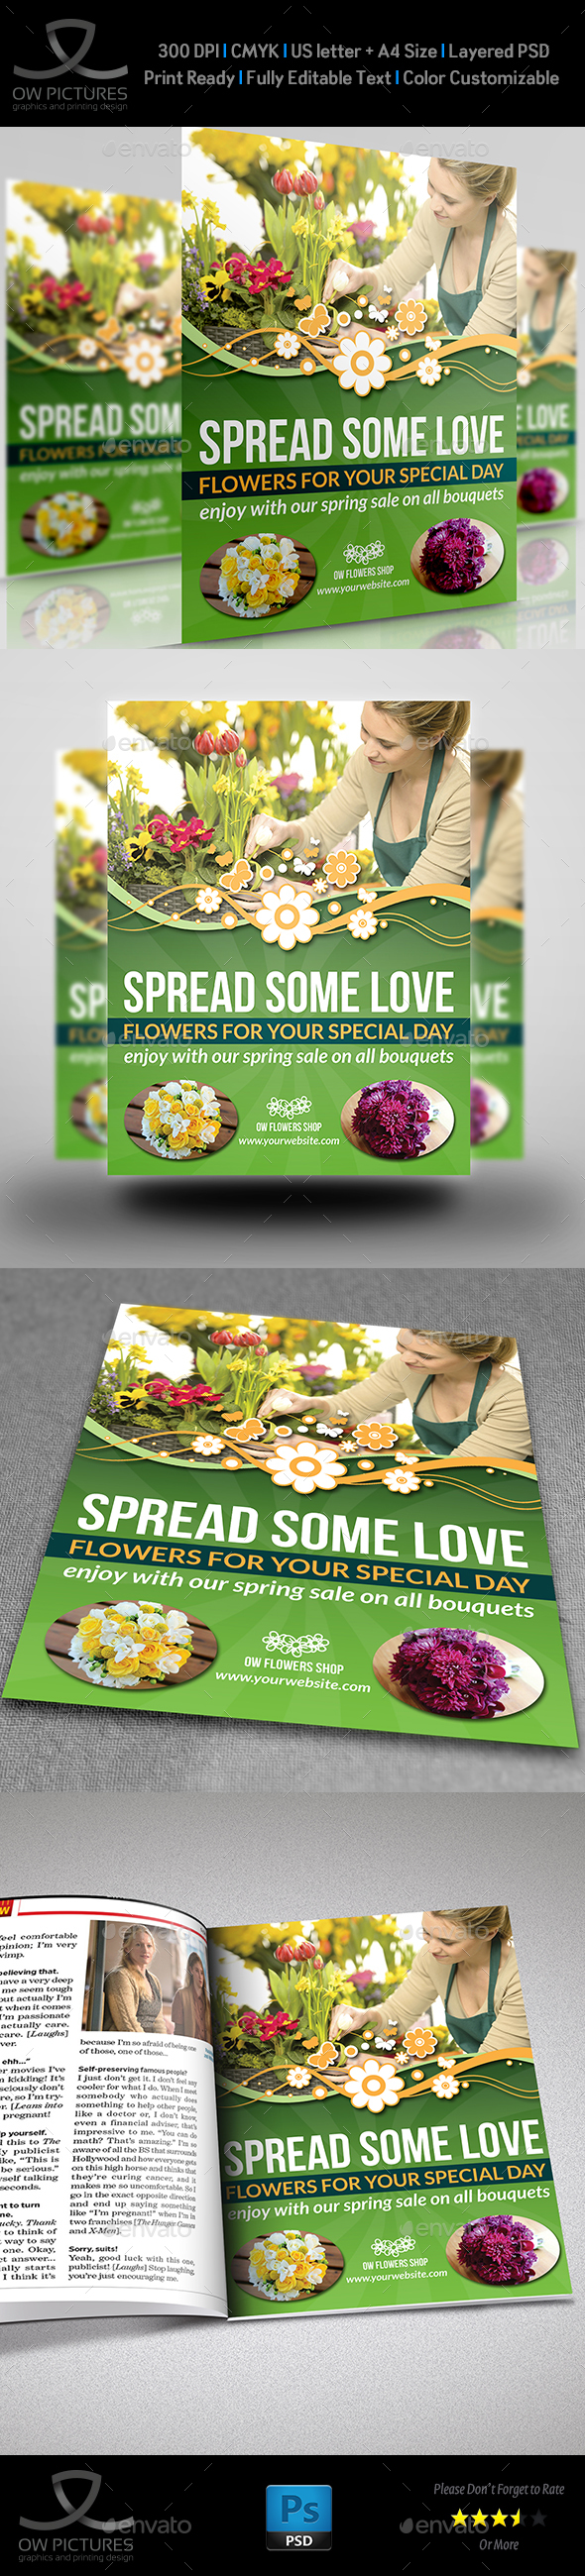 Flowers Shop Flyer Template - Commerce Flyers